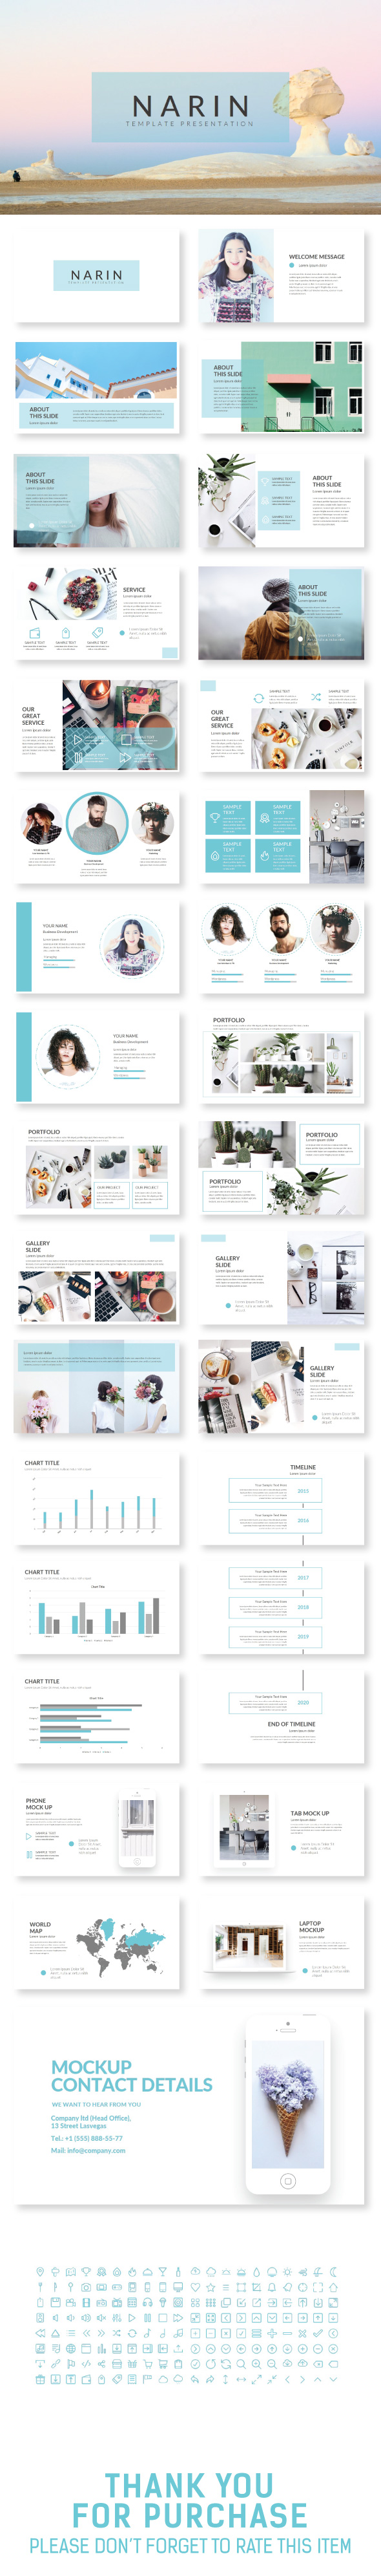 NARIN Keynote Template - Creative Keynote Templates